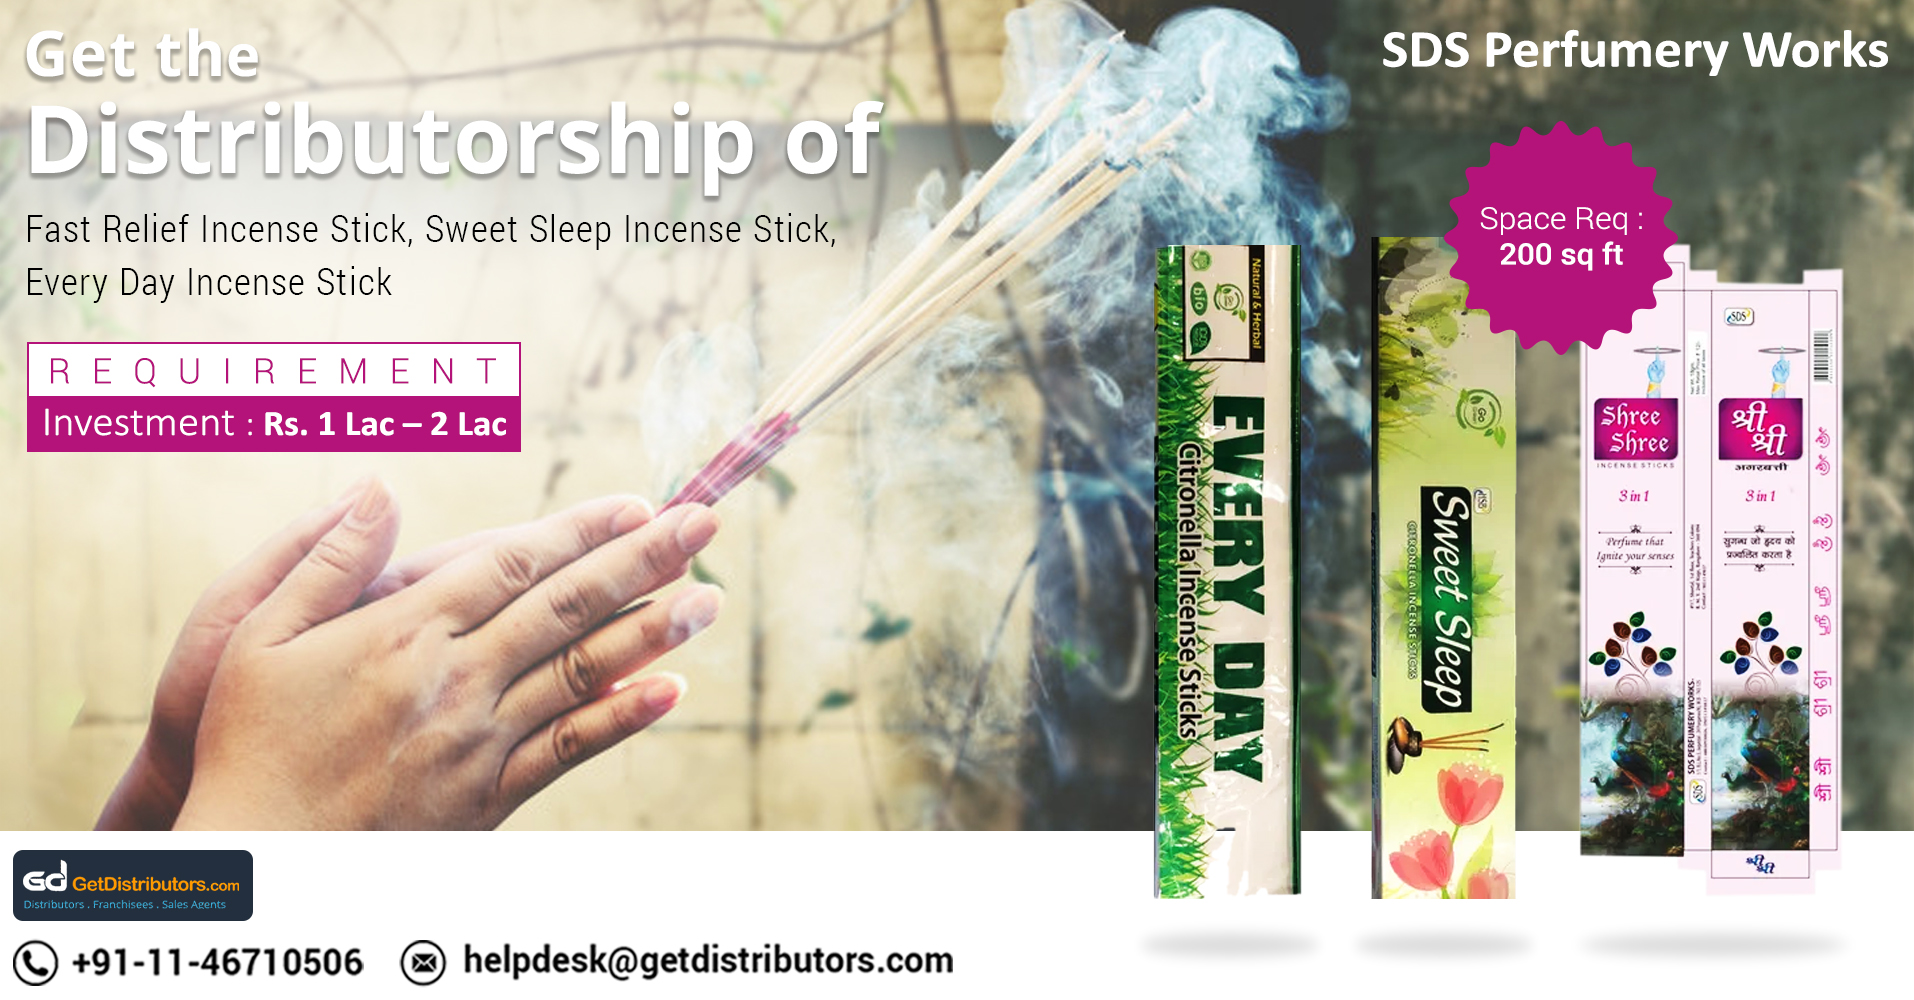 Aromatic Incense Sticks To Fill Your House With Positivity